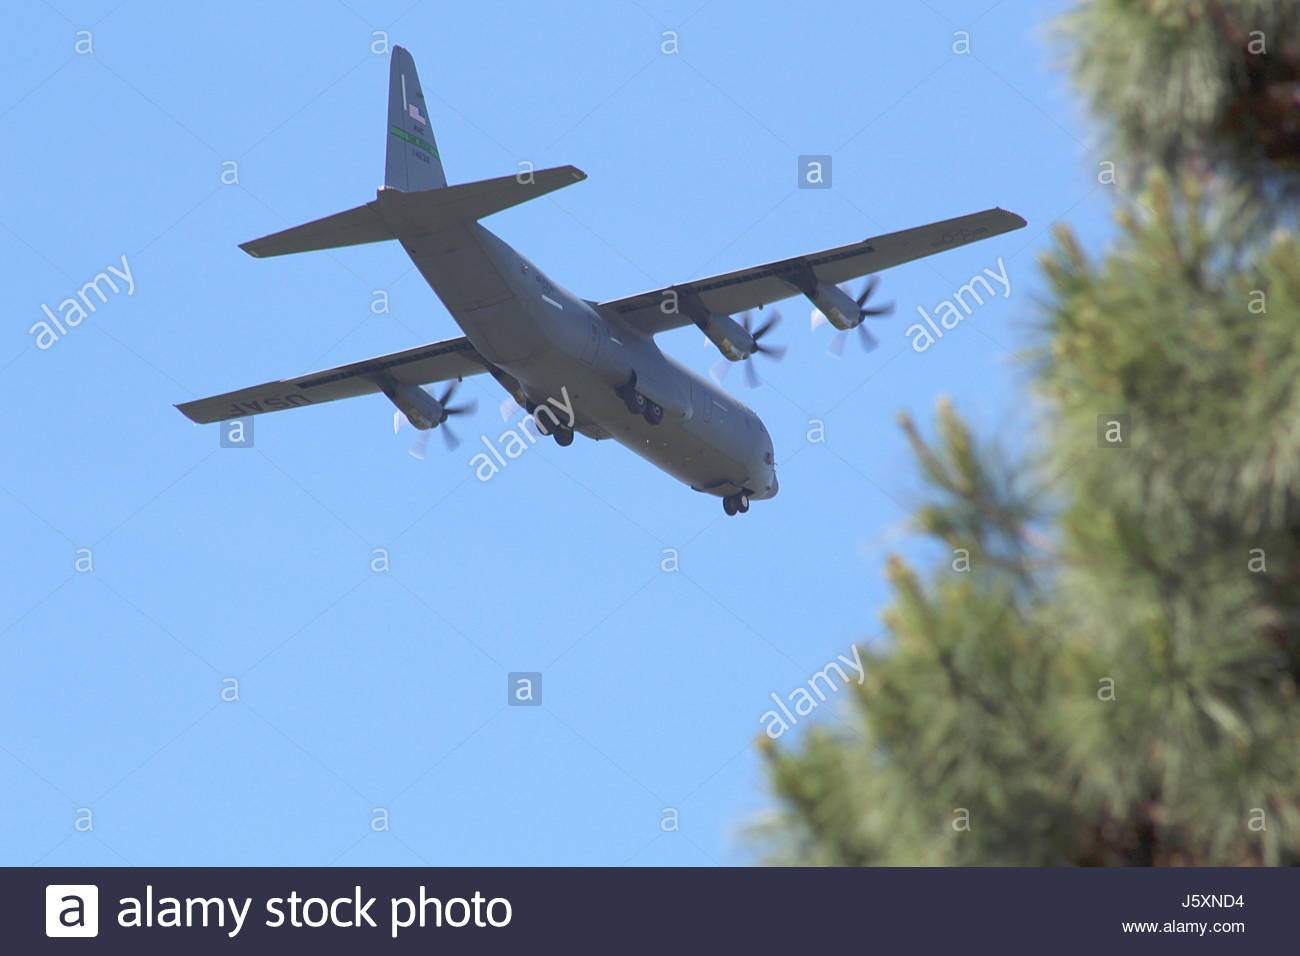 Air Force transport flying low - Stock Image